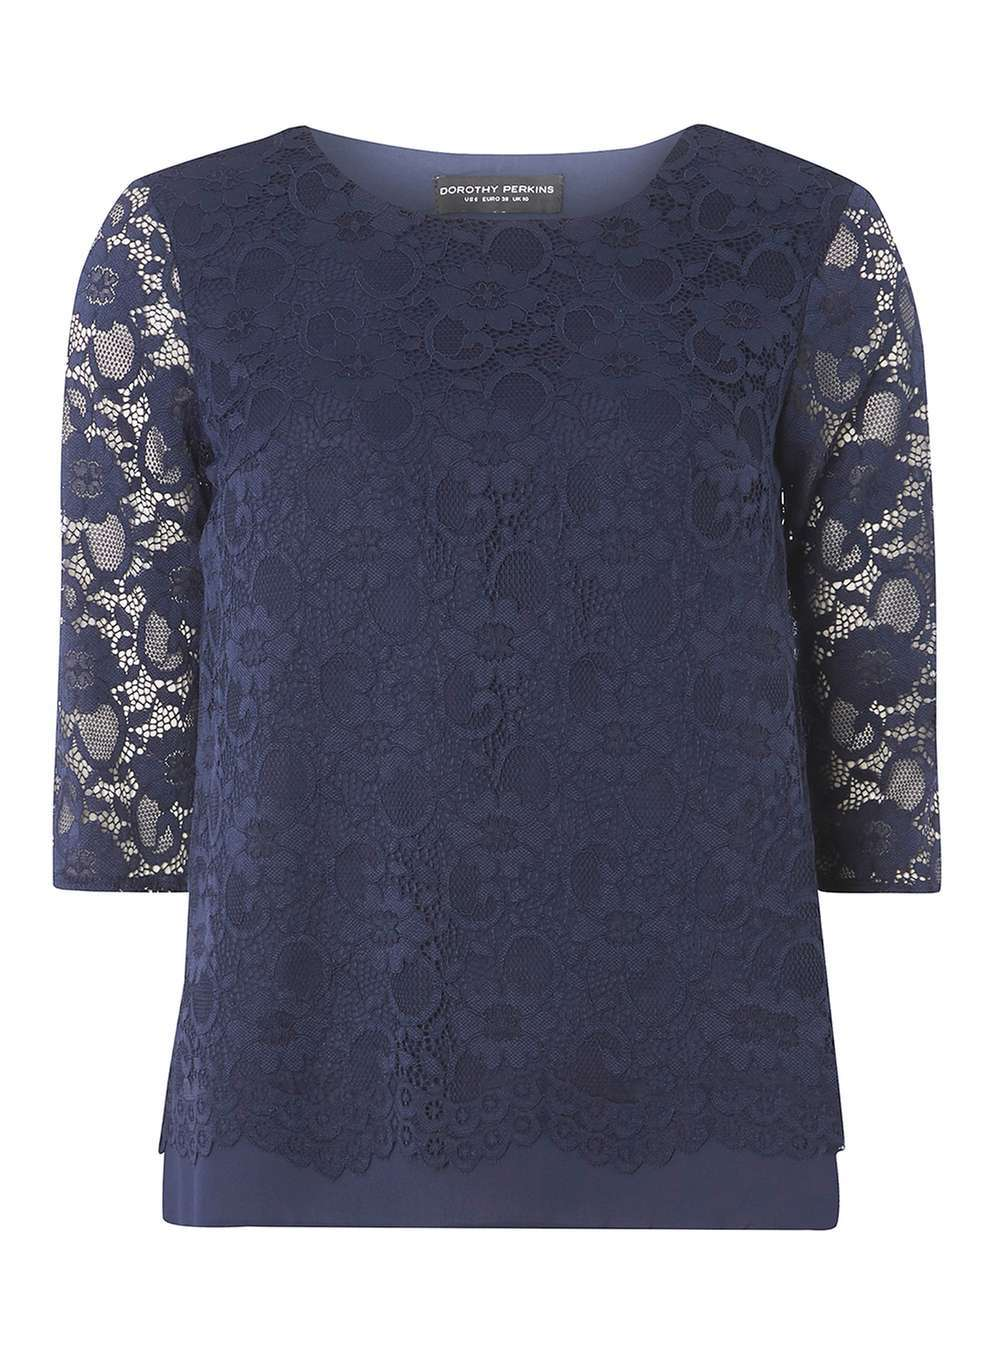 Womens Navy Blue Lace Zip Top Blue - predominant colour: navy; occasions: evening; length: standard; style: top; fit: body skimming; neckline: crew; sleeve length: half sleeve; sleeve style: standard; texture group: lace; pattern type: fabric; pattern: patterned/print; fibres: nylon - stretch; season: a/w 2016; wardrobe: event